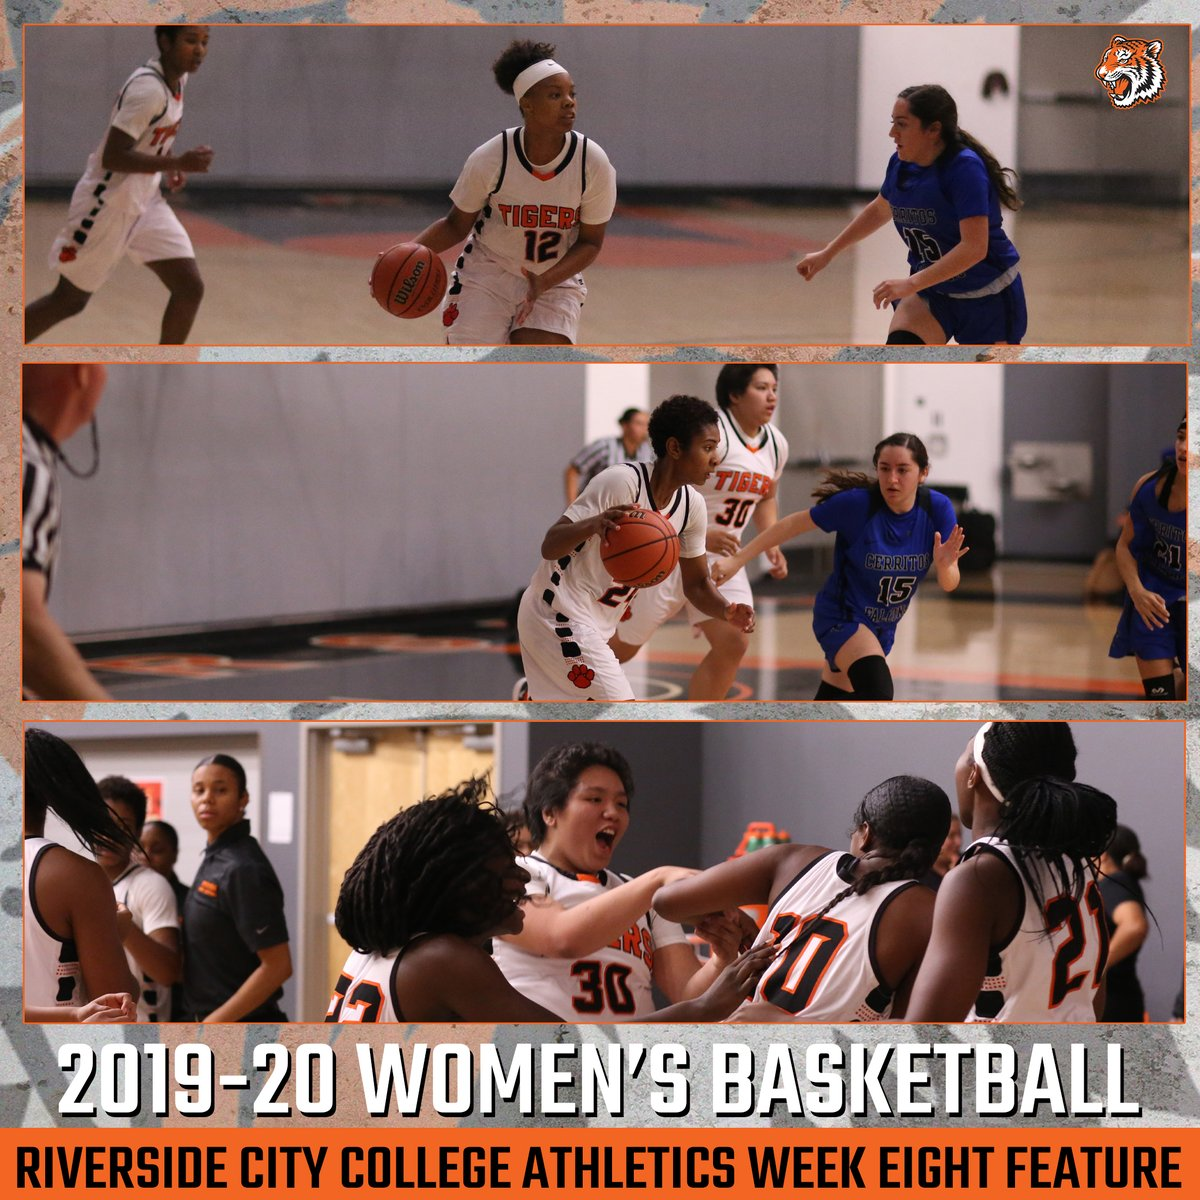 A Hardwood Classic 🏀 Check out this week's feature that dives into the women's basketball team's most recent campaign. Link in bio. #TheCommunitysCollege https://t.co/fJLbS7UDDF